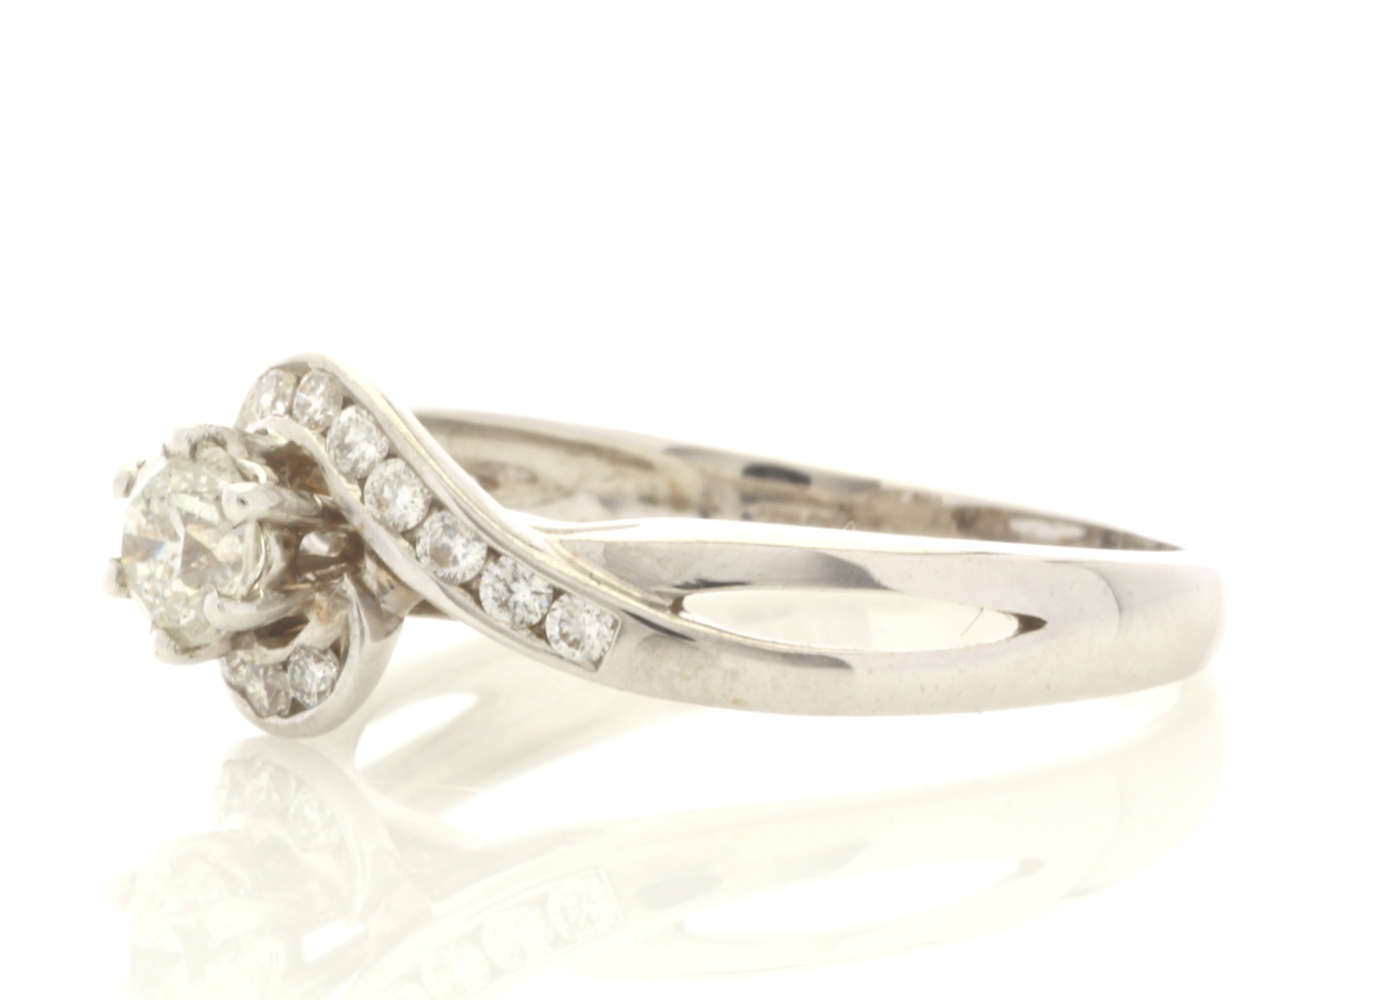 18ct White Gold Stone Set Shoulders Diamond Ring 0.61 Carats - Image 2 of 5